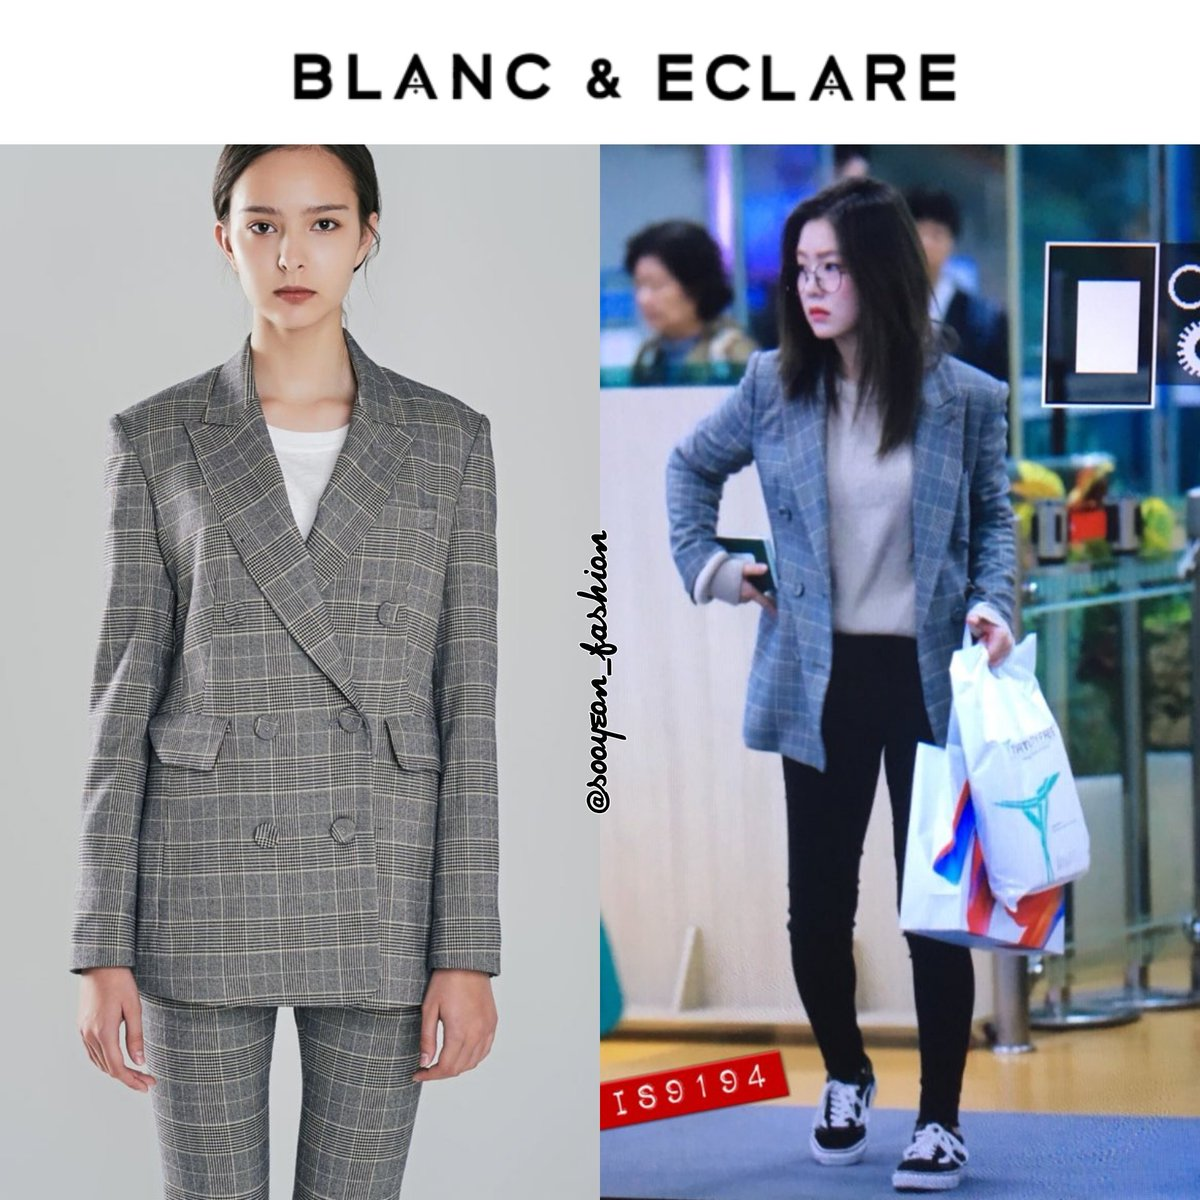 Jsy Fashion On Twitter 171107 Red Velvet S Irene Wearing Blanc Eclare Gimpo Airport Jacket Davis 375 Https T Co C3xx8p7uib Is9194 Https T Co Yg2r1rezfe